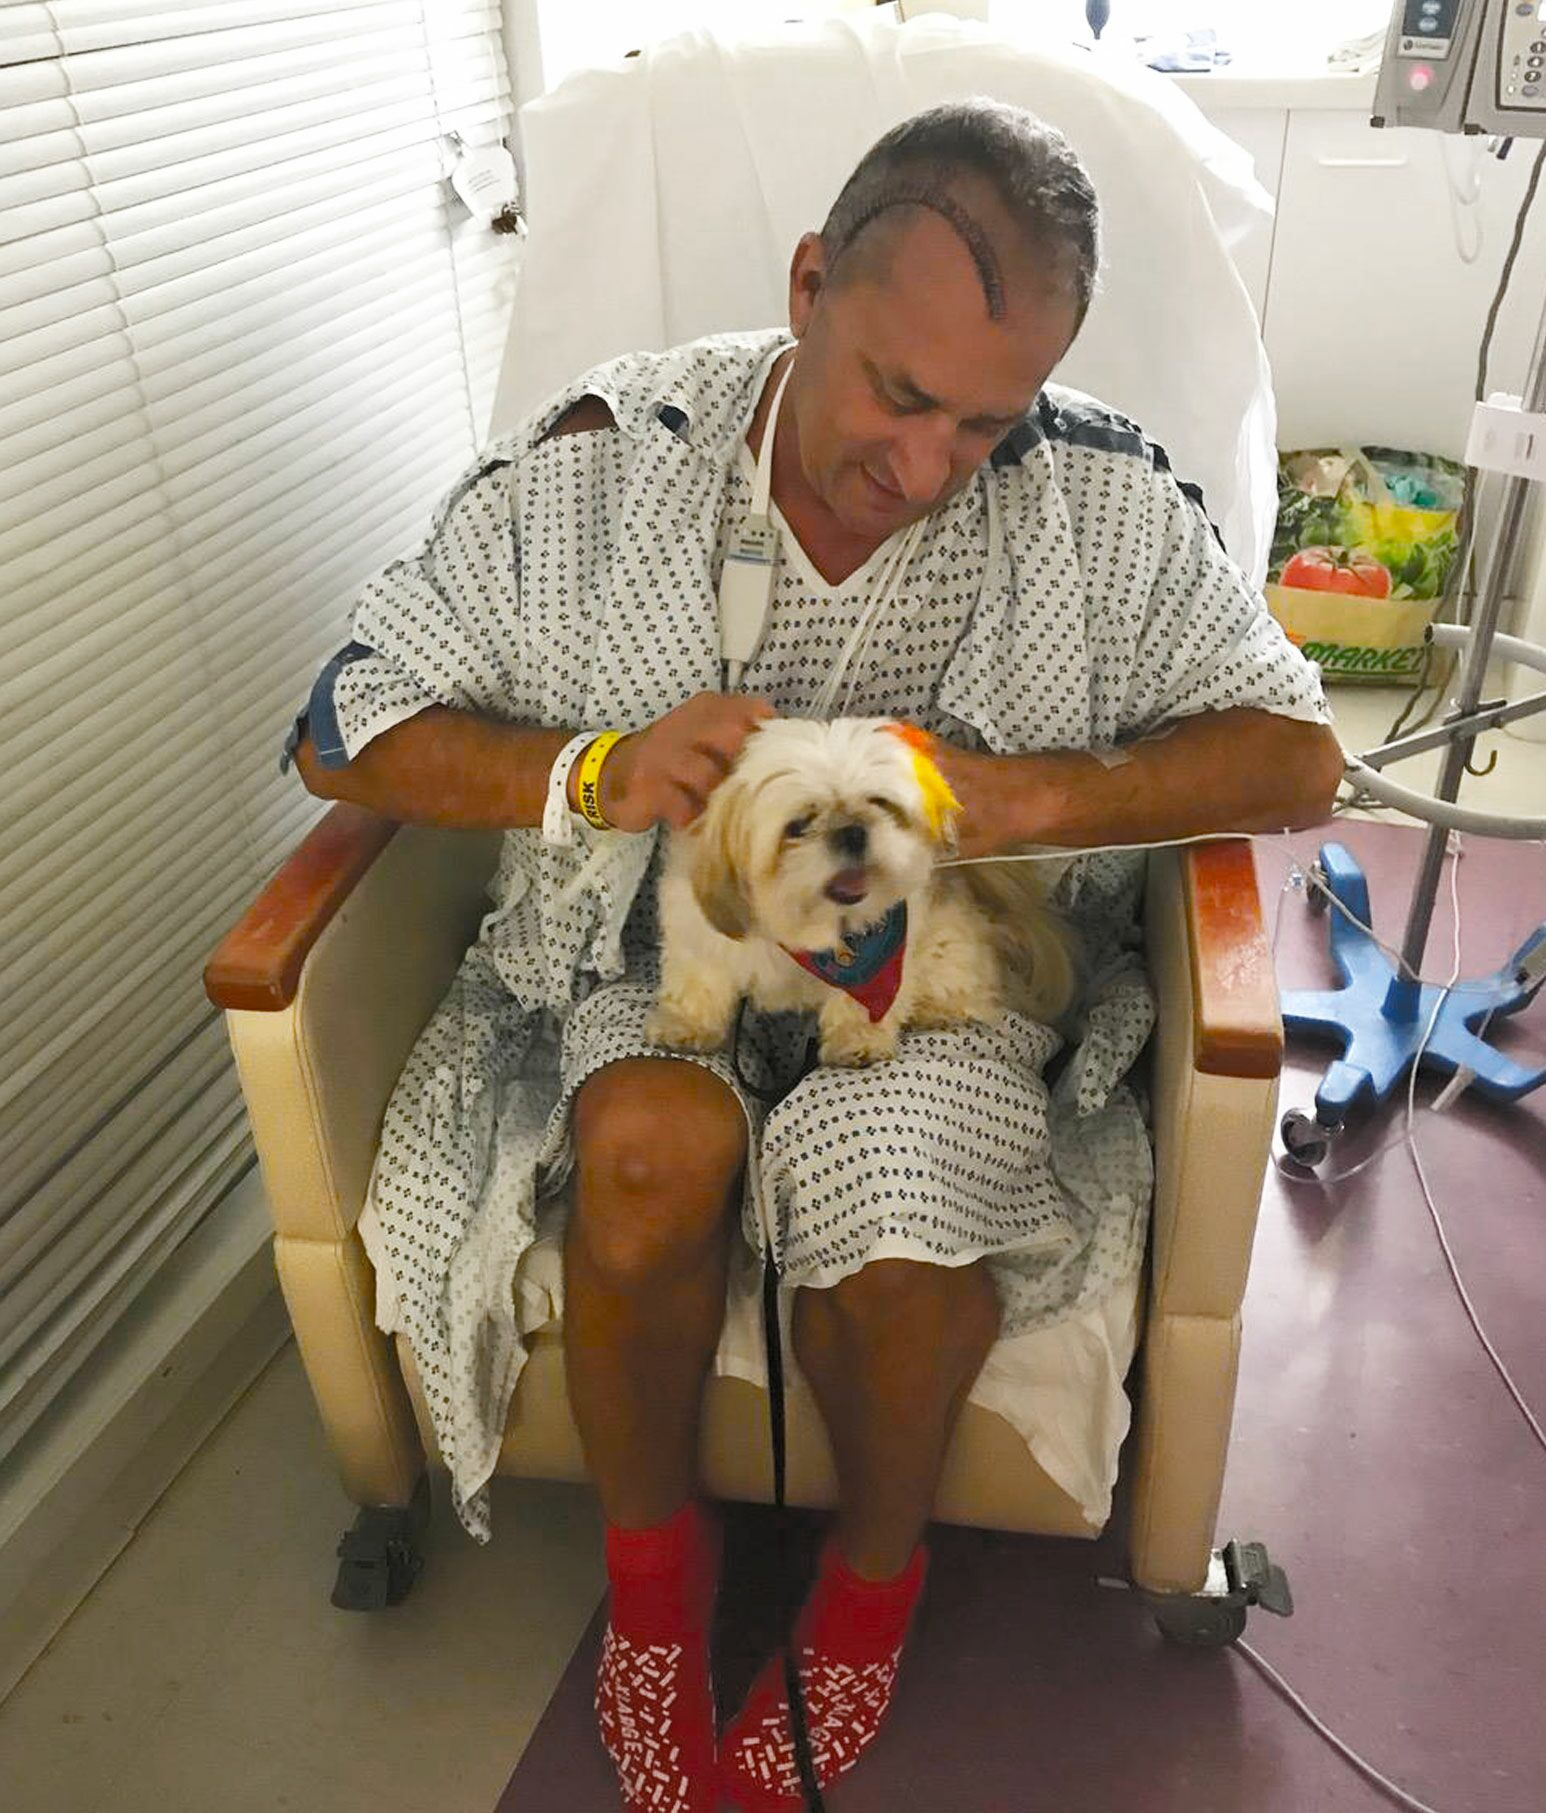 A man with stitches and medical staples across his scalp in a hospital gown sits in a chair within a hospital room while holding a shitzhu dog on his lap.